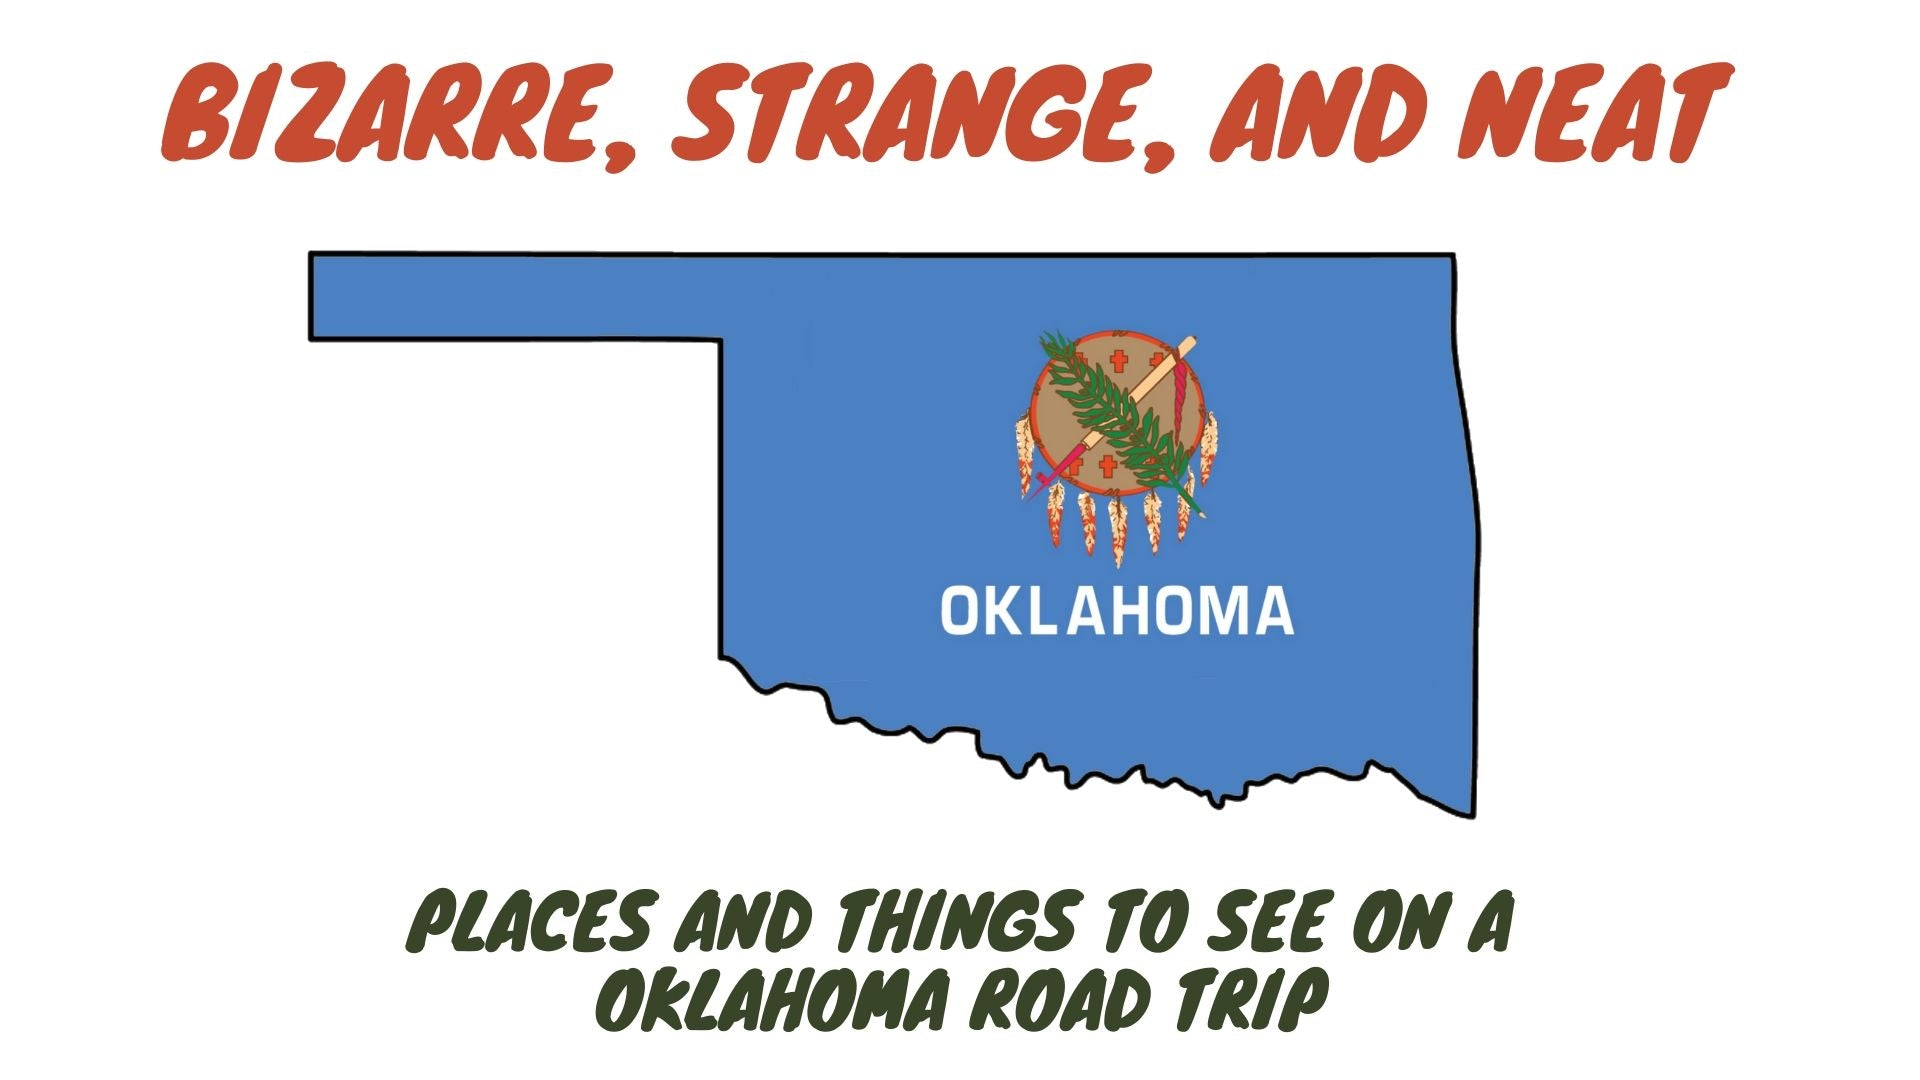 Bizarre, Strange, and Neat Places and Things to See on a Oklahoma Road Trip